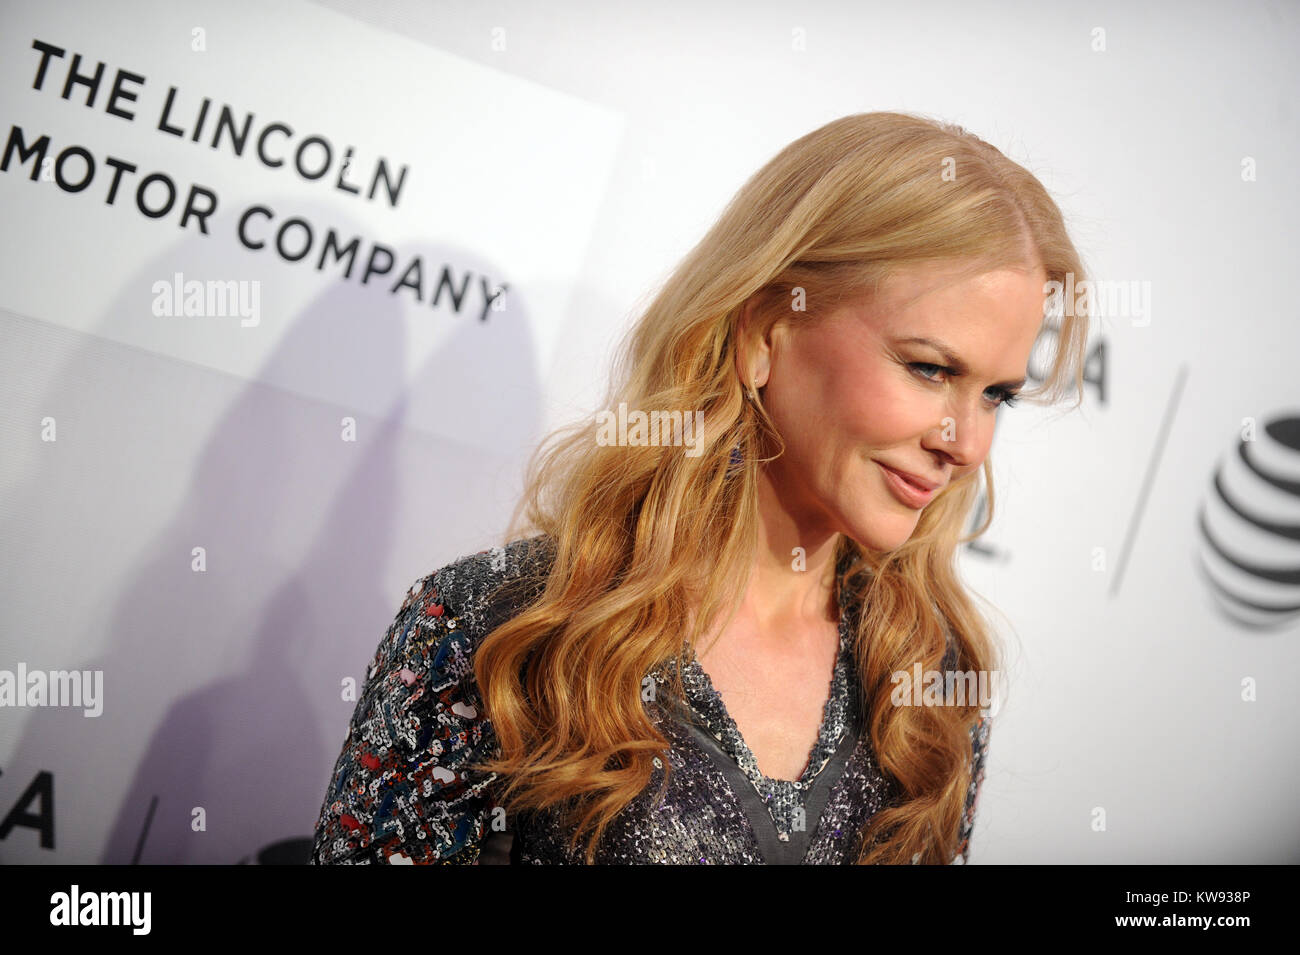 New York Ny New York Ny Nicole Kidman Attends The Premiere Of Stock Photo Alamy